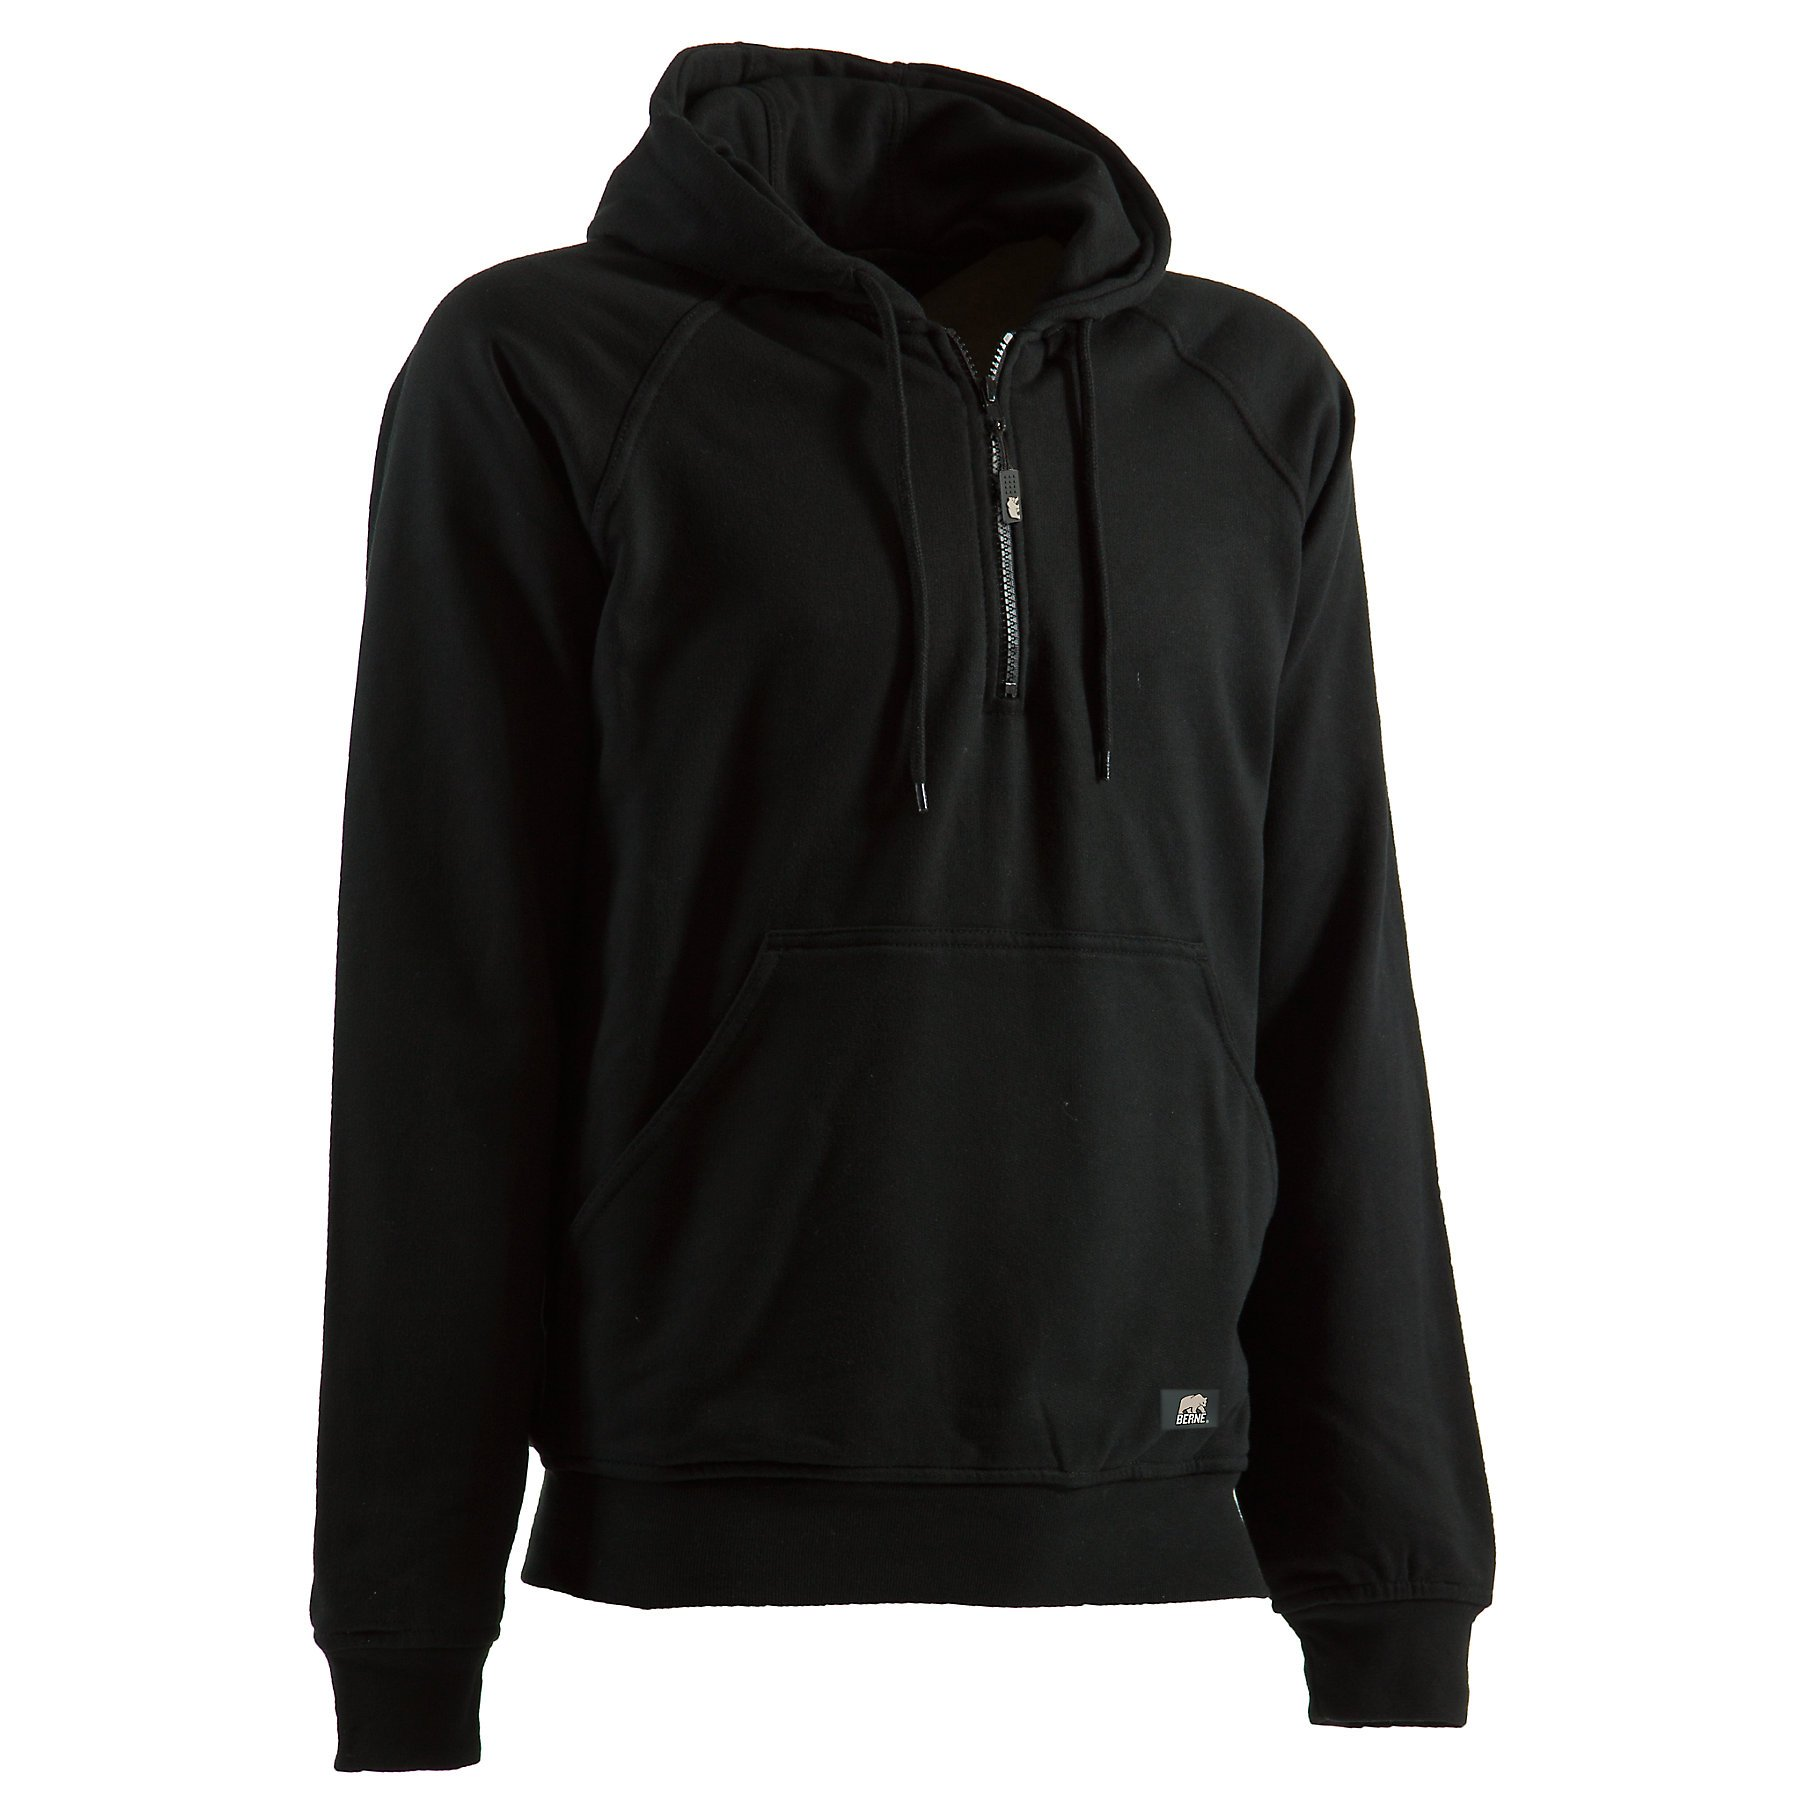 638e8f110 Berne Quarter-Zip Hooded Sweatshirt - Mens | Up to 13% Off Free Shipping  over $49!